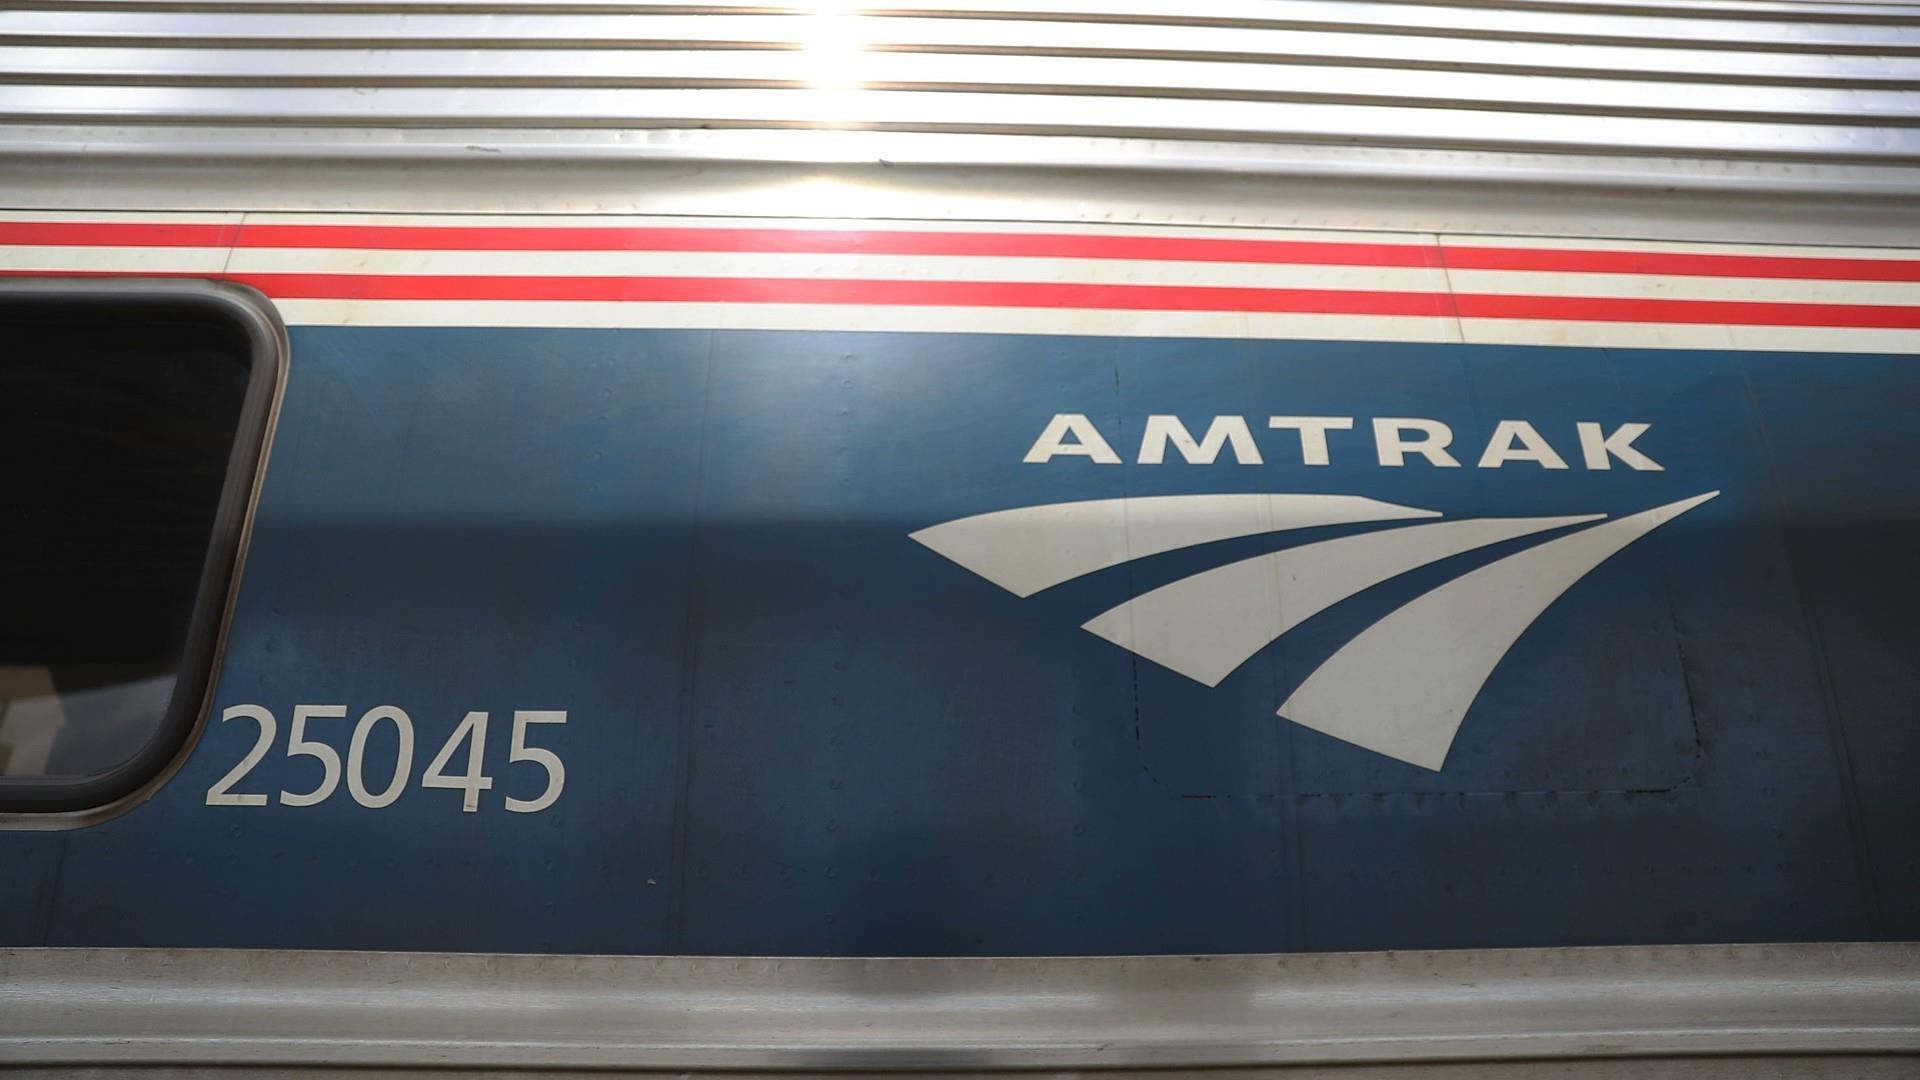 'Tone deaf': Amtrak tries to charge 2 wheelchair users $25,000 tickets